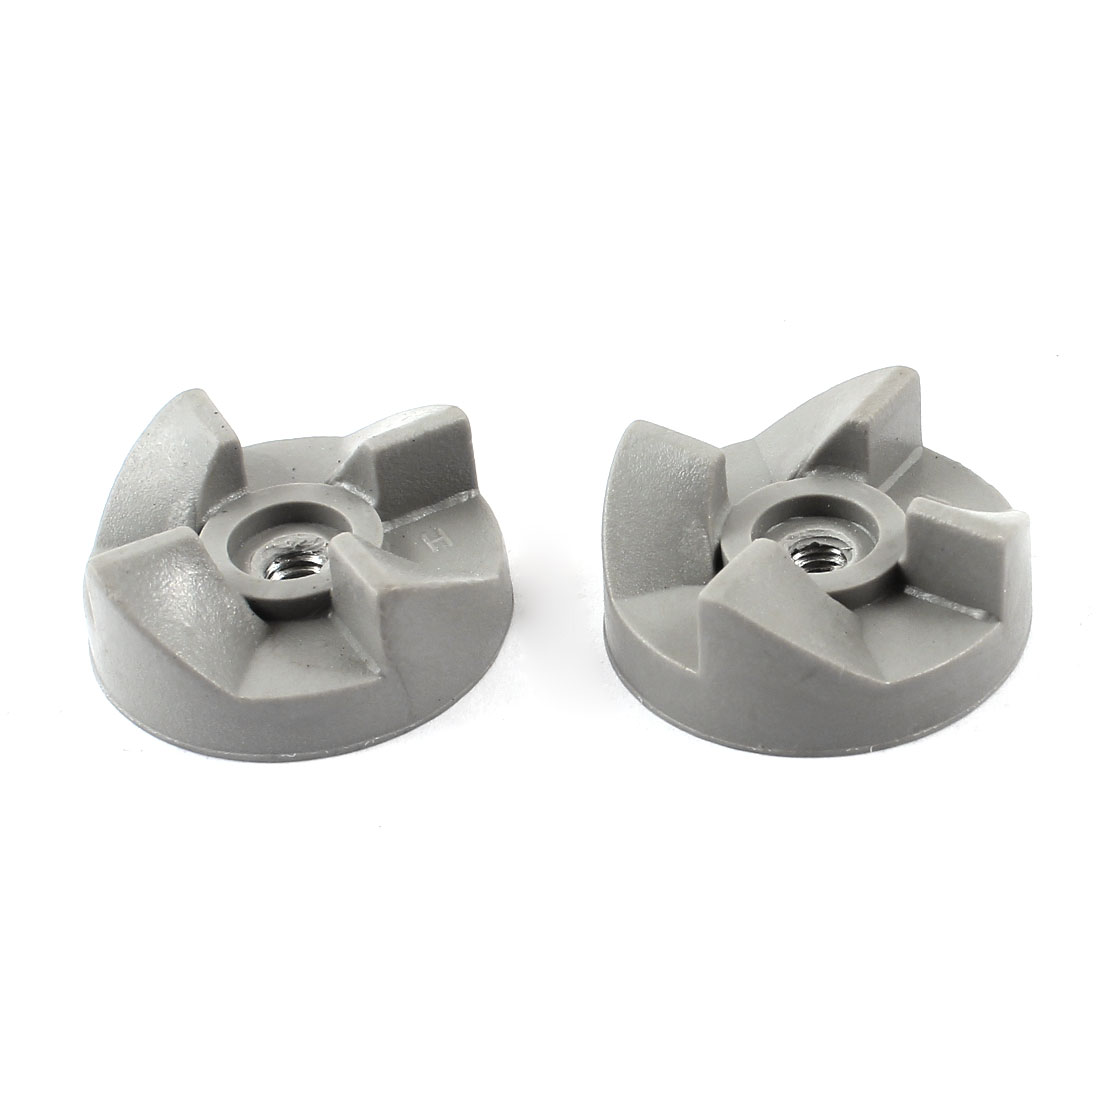 Home Kitchen Aid Blender Rubber Coupler Clutch 30mm Dia 4 Teeth Gray 2 Pcs